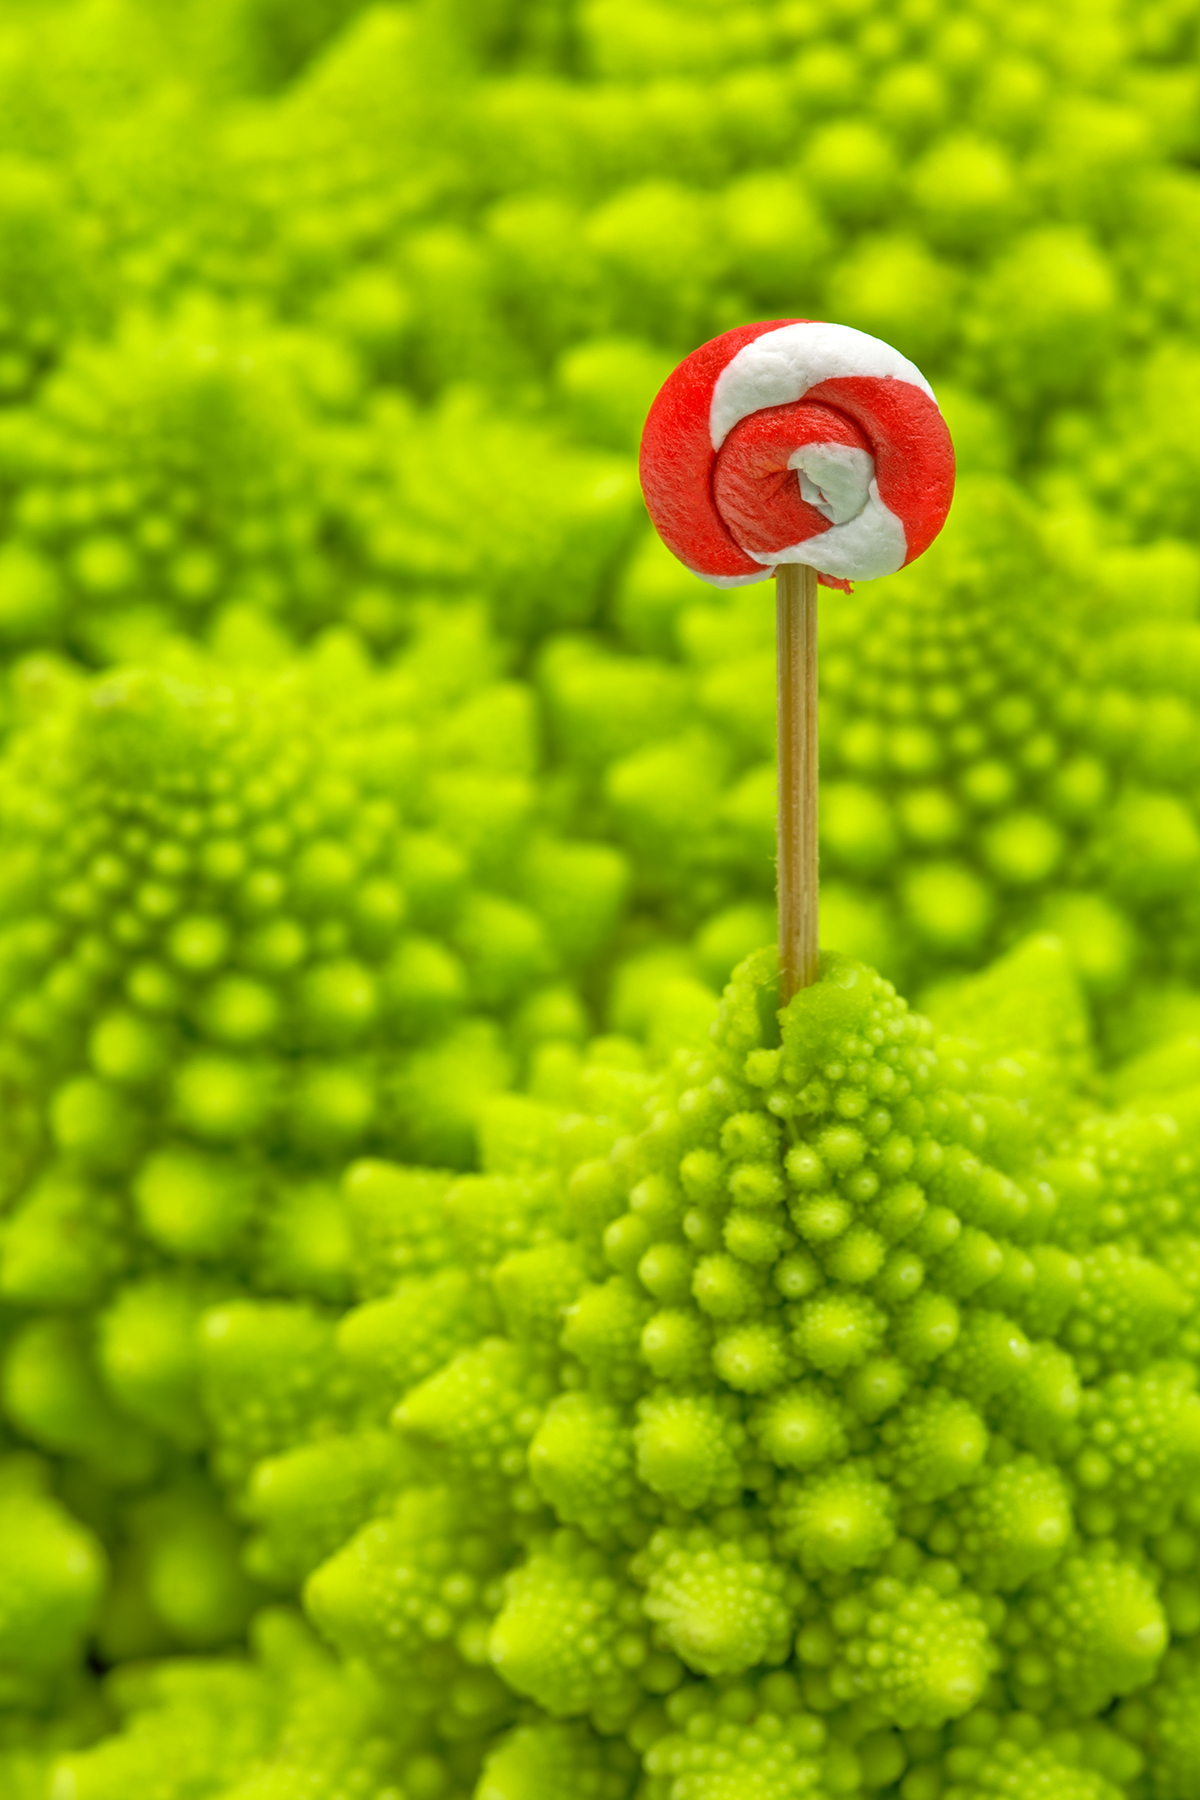 Romanesco Lollipop - HDR, Abstract, Psychedelic, Sci, Savoury, HQ Photo